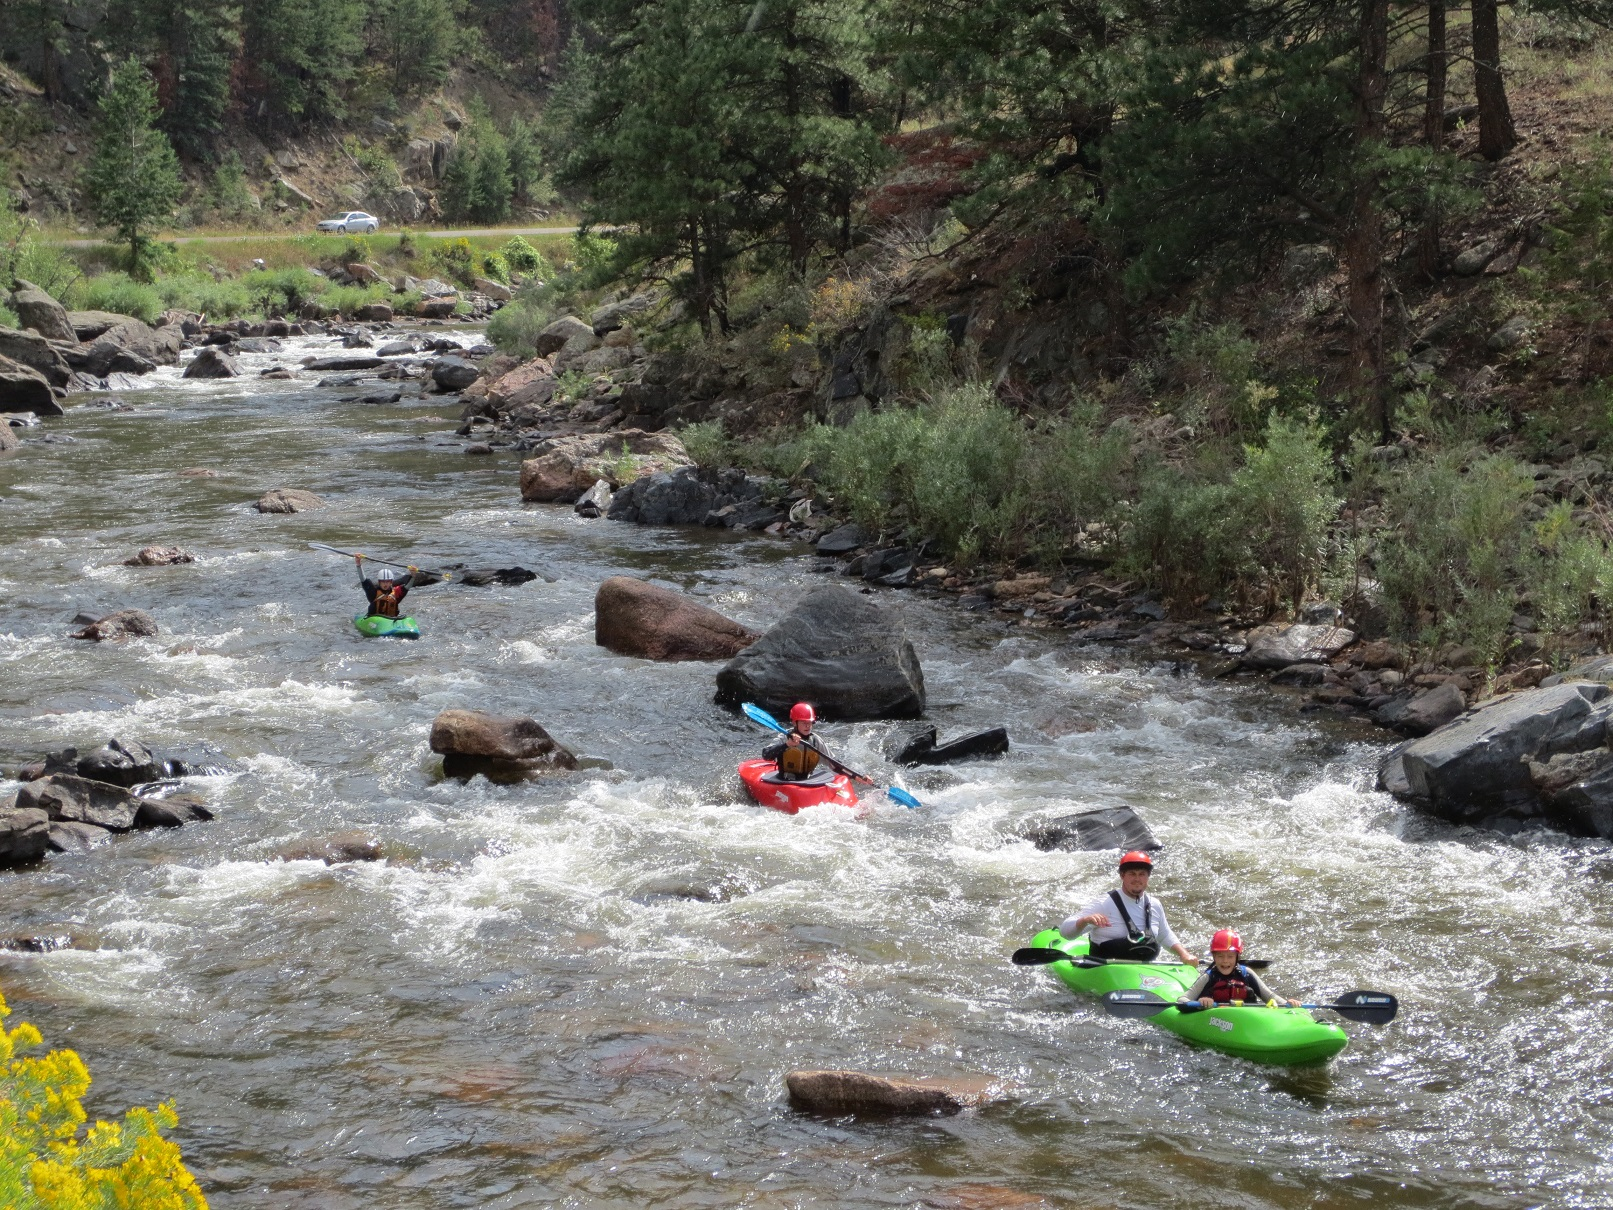 Click image for larger version  Name:2103-August River Run 206 Copy.JPG Views:136 Size:1.05 MB ID:7062